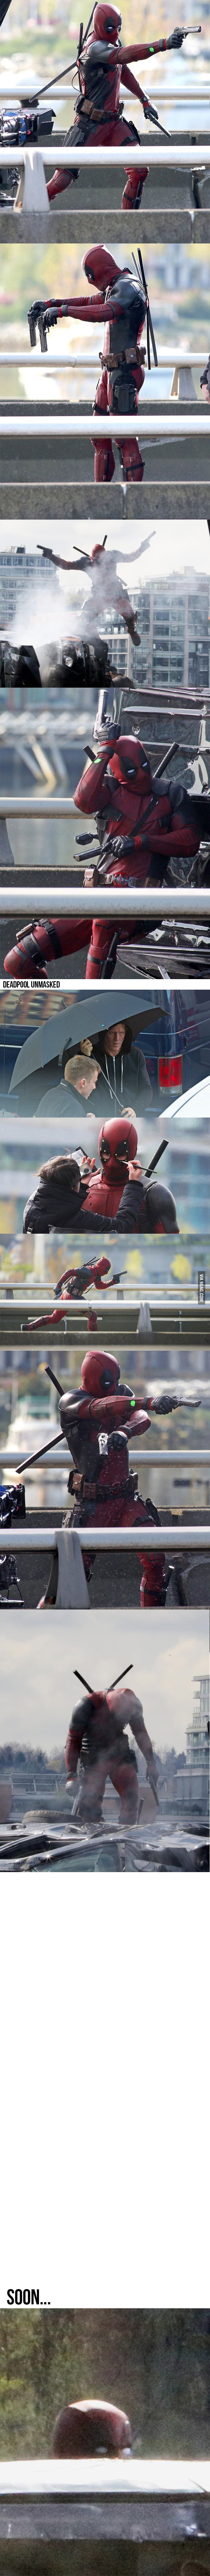 """Close-Up Photos Of """"Deadpool"""" On The Set Are Leaked, Excitement Intensified!"""